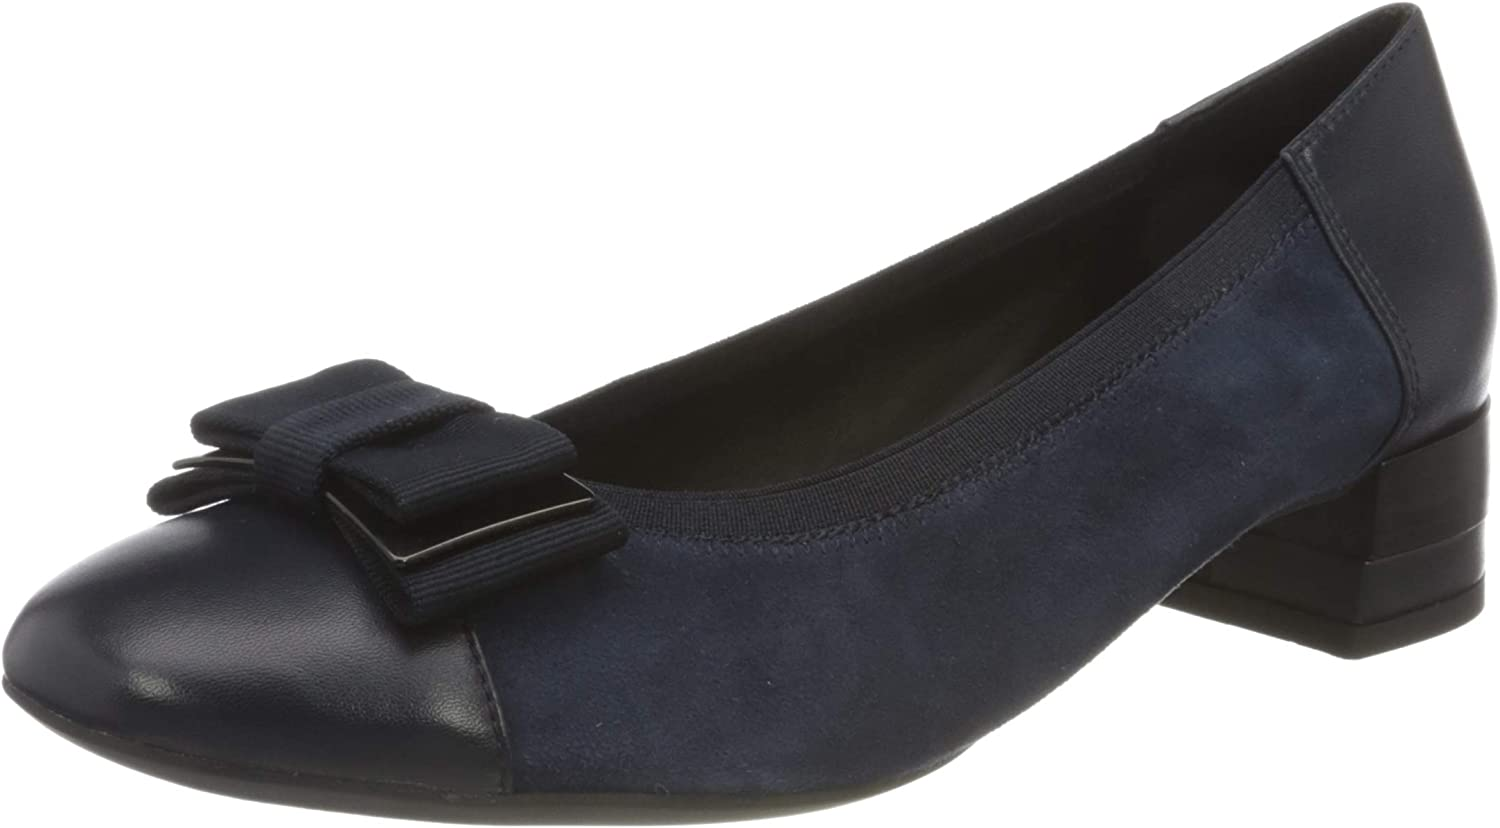 Geox Special price for a limited time Gorgeous Womens Adult CHLOOMID Shoes